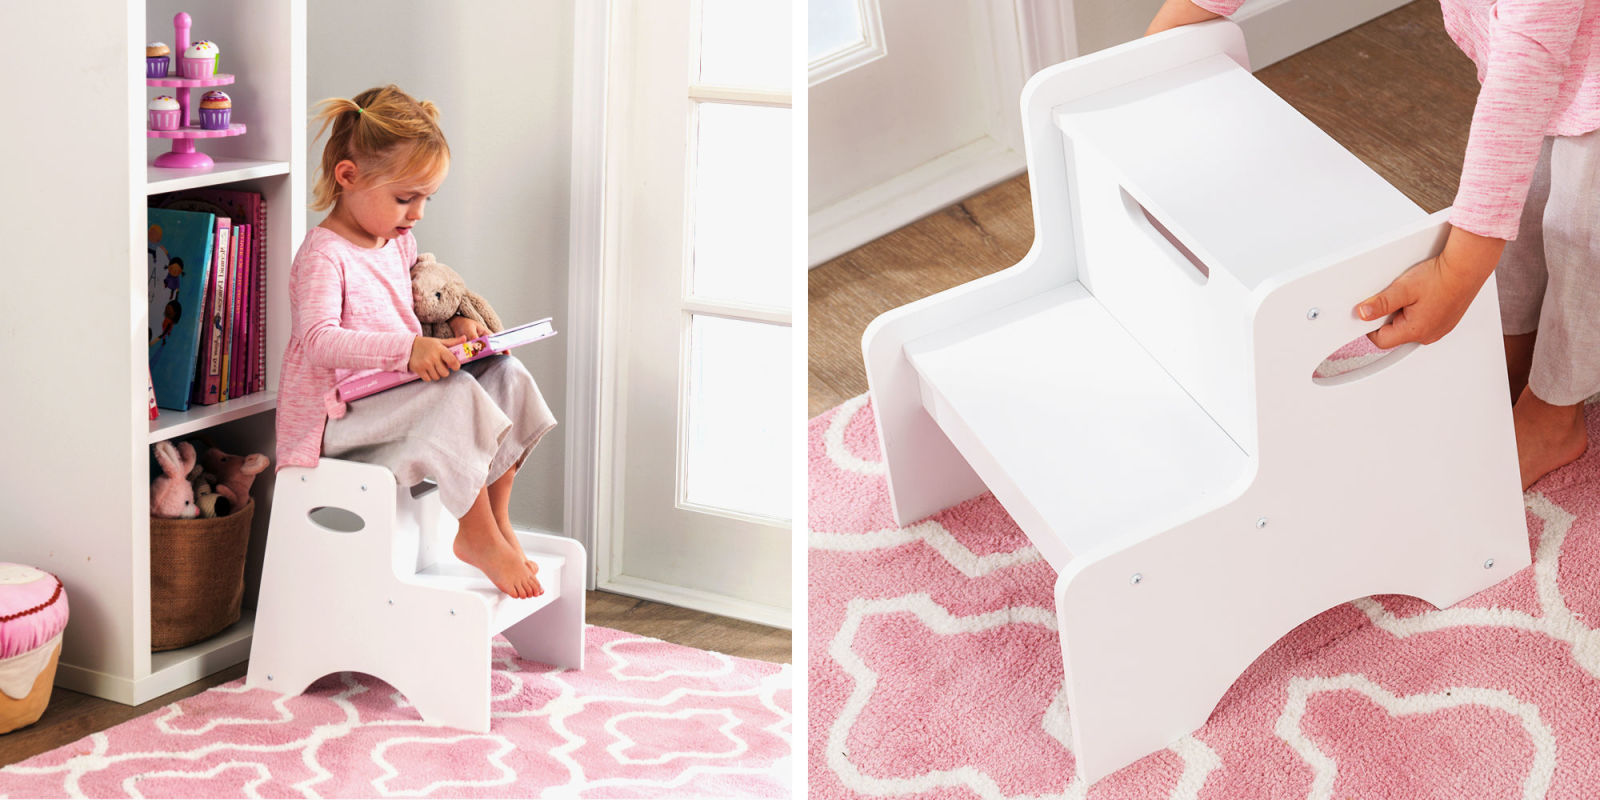 11 Best Kids Step Stools in 2017 - Safe Step Stools for Kids and Toddlers & 11 Best Kids Step Stools in 2017 - Safe Step Stools for Kids and ... islam-shia.org